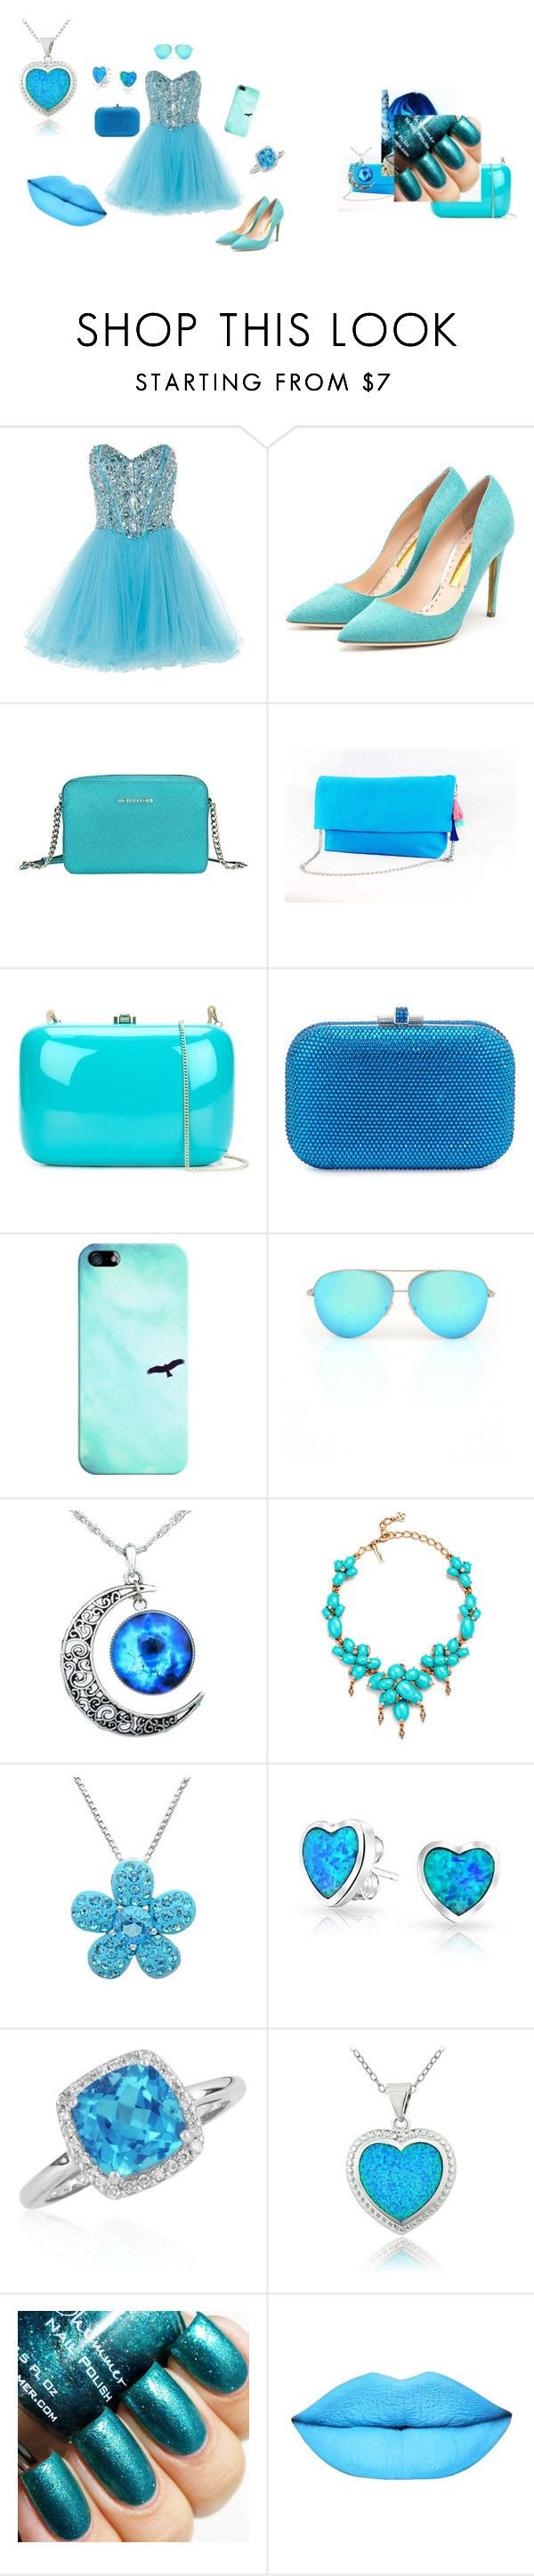 """Turcoaz <3"" by neculaescu-alexia on Polyvore featuring Anoushka G, Rupert Sanderson, Michael Kors, Rocio, Judith Leiber, Casetify, Victoria Beckham, Oscar de la Renta, Amanda Rose Collection and Bling Jewelry"